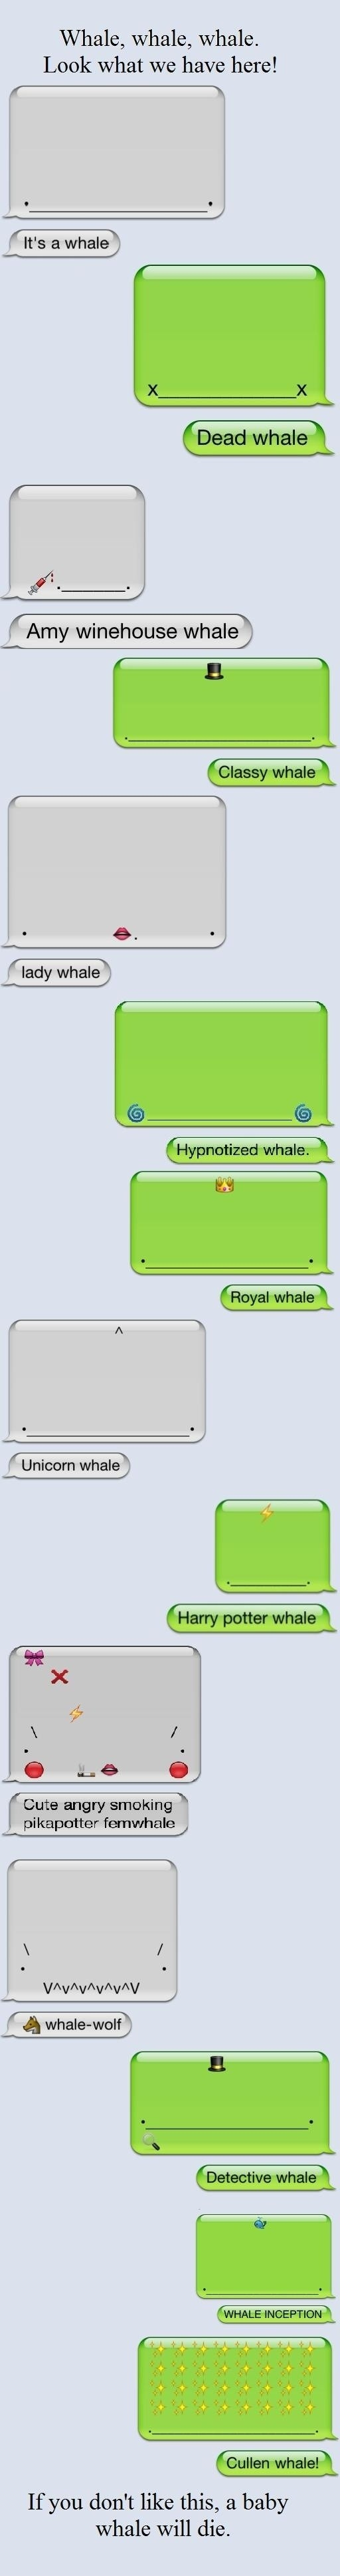 @Laura Paulsen this makes me want an iPhone just so I can send you a whale a day...oh whale...HA HA HA HA  HA AH AAHAHHAH